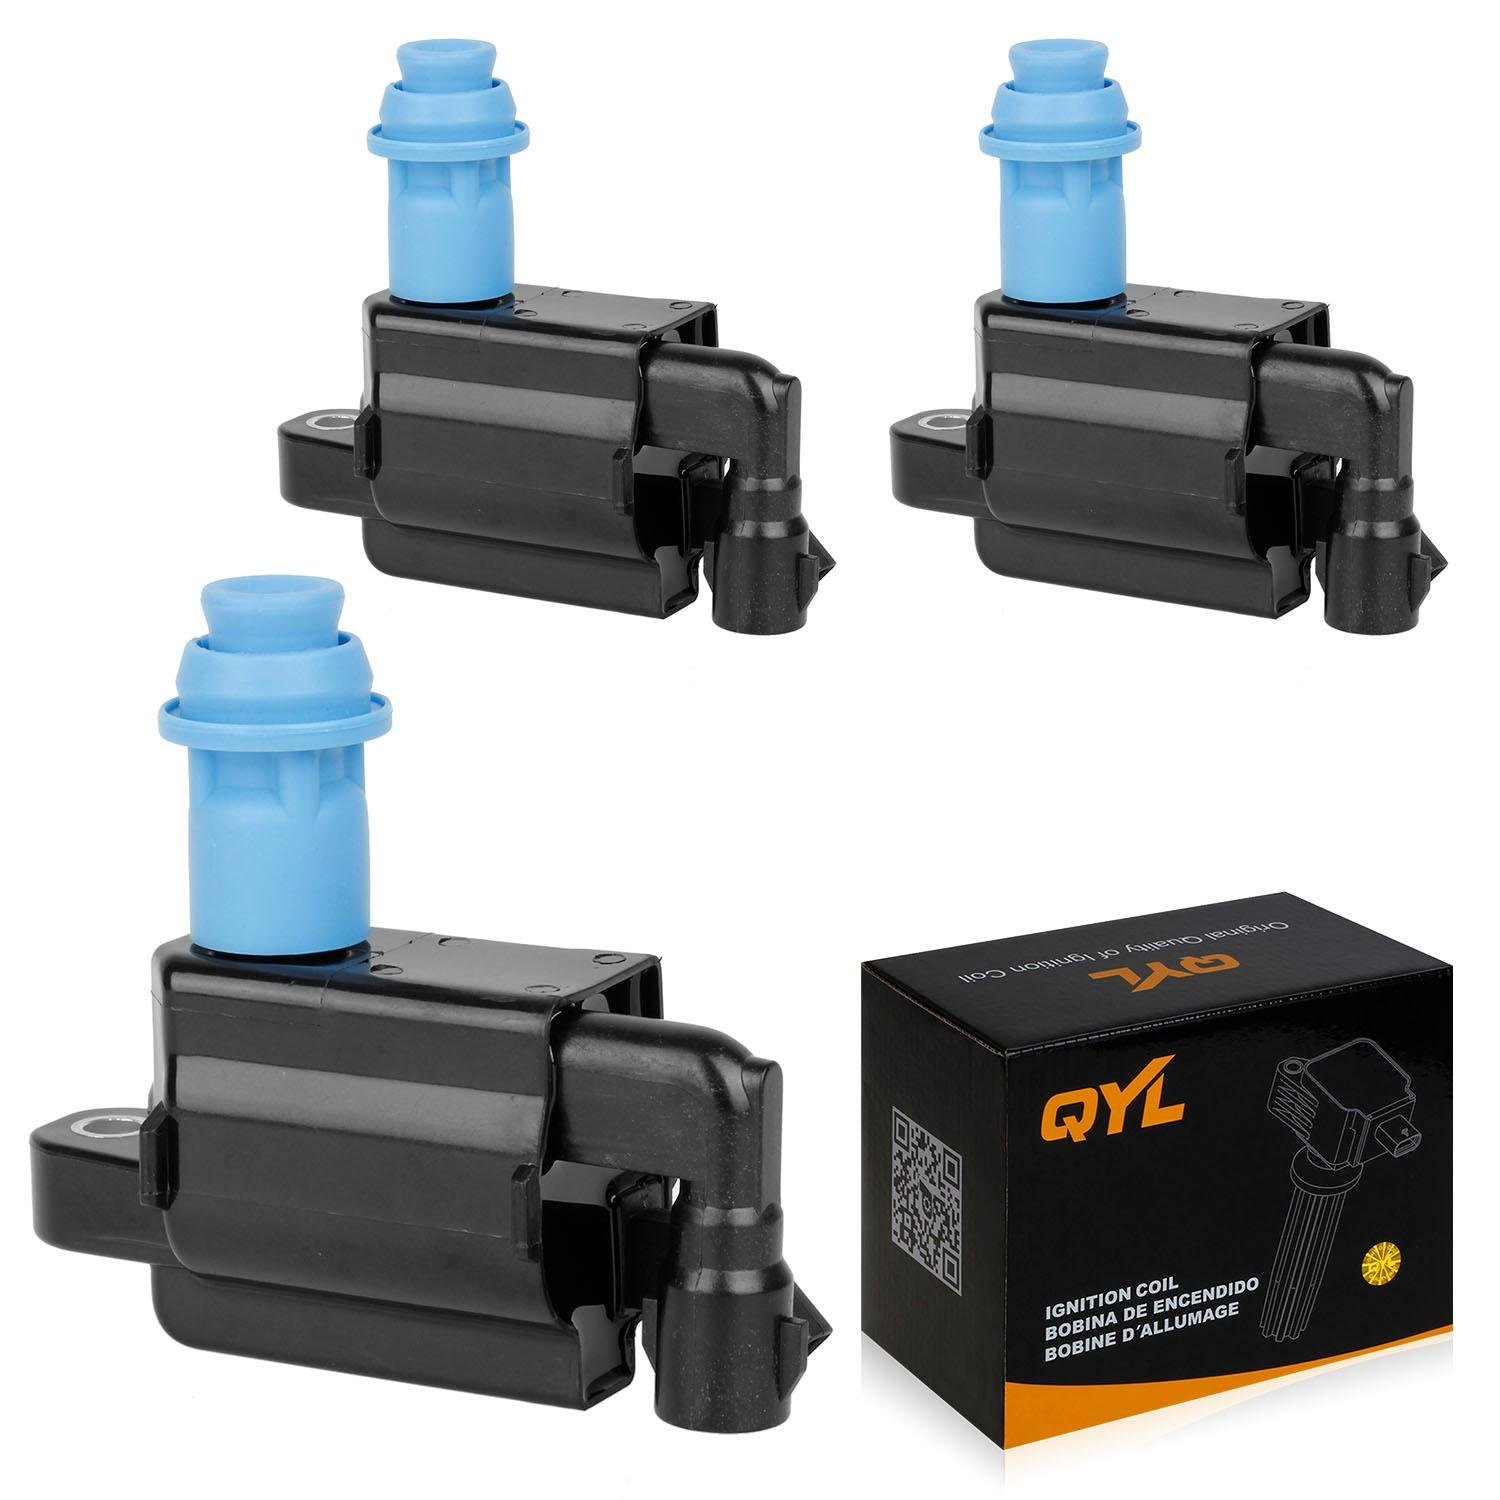 Ignition Coil Replacement for Lexus - GS300 IS300 SC300 - Toyota - Supra - 3.0l V6 Compatible with C1153 88921376 90919-02216 - 3 PACK QYL